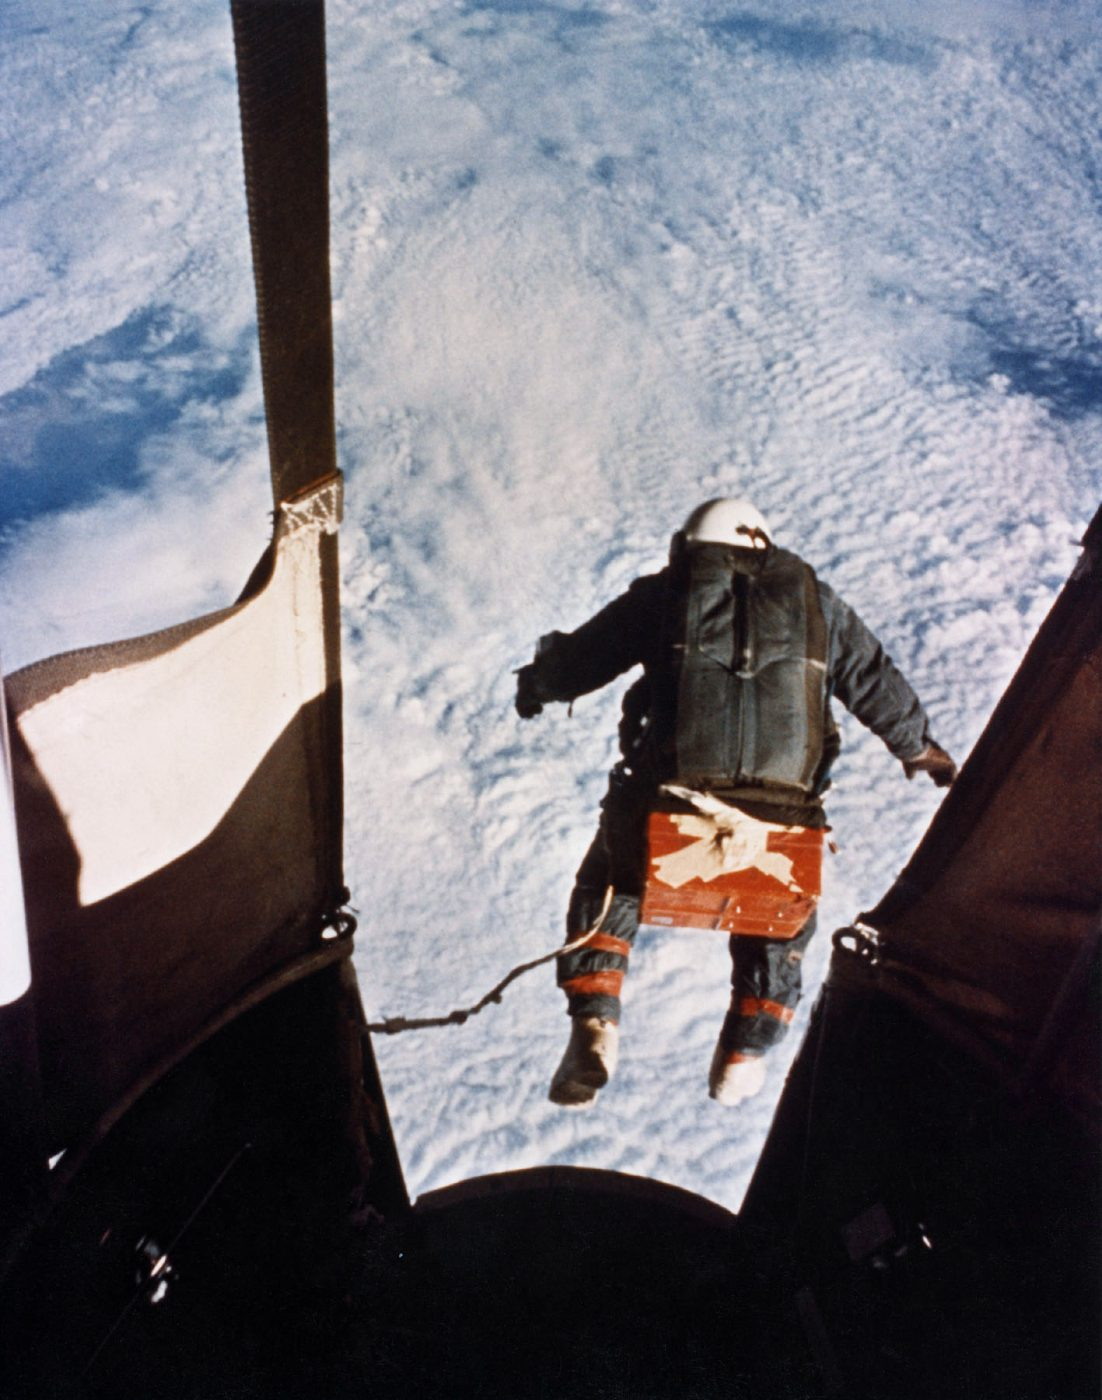 Kittinger's record-breaking skydive from Excelsior III (above).